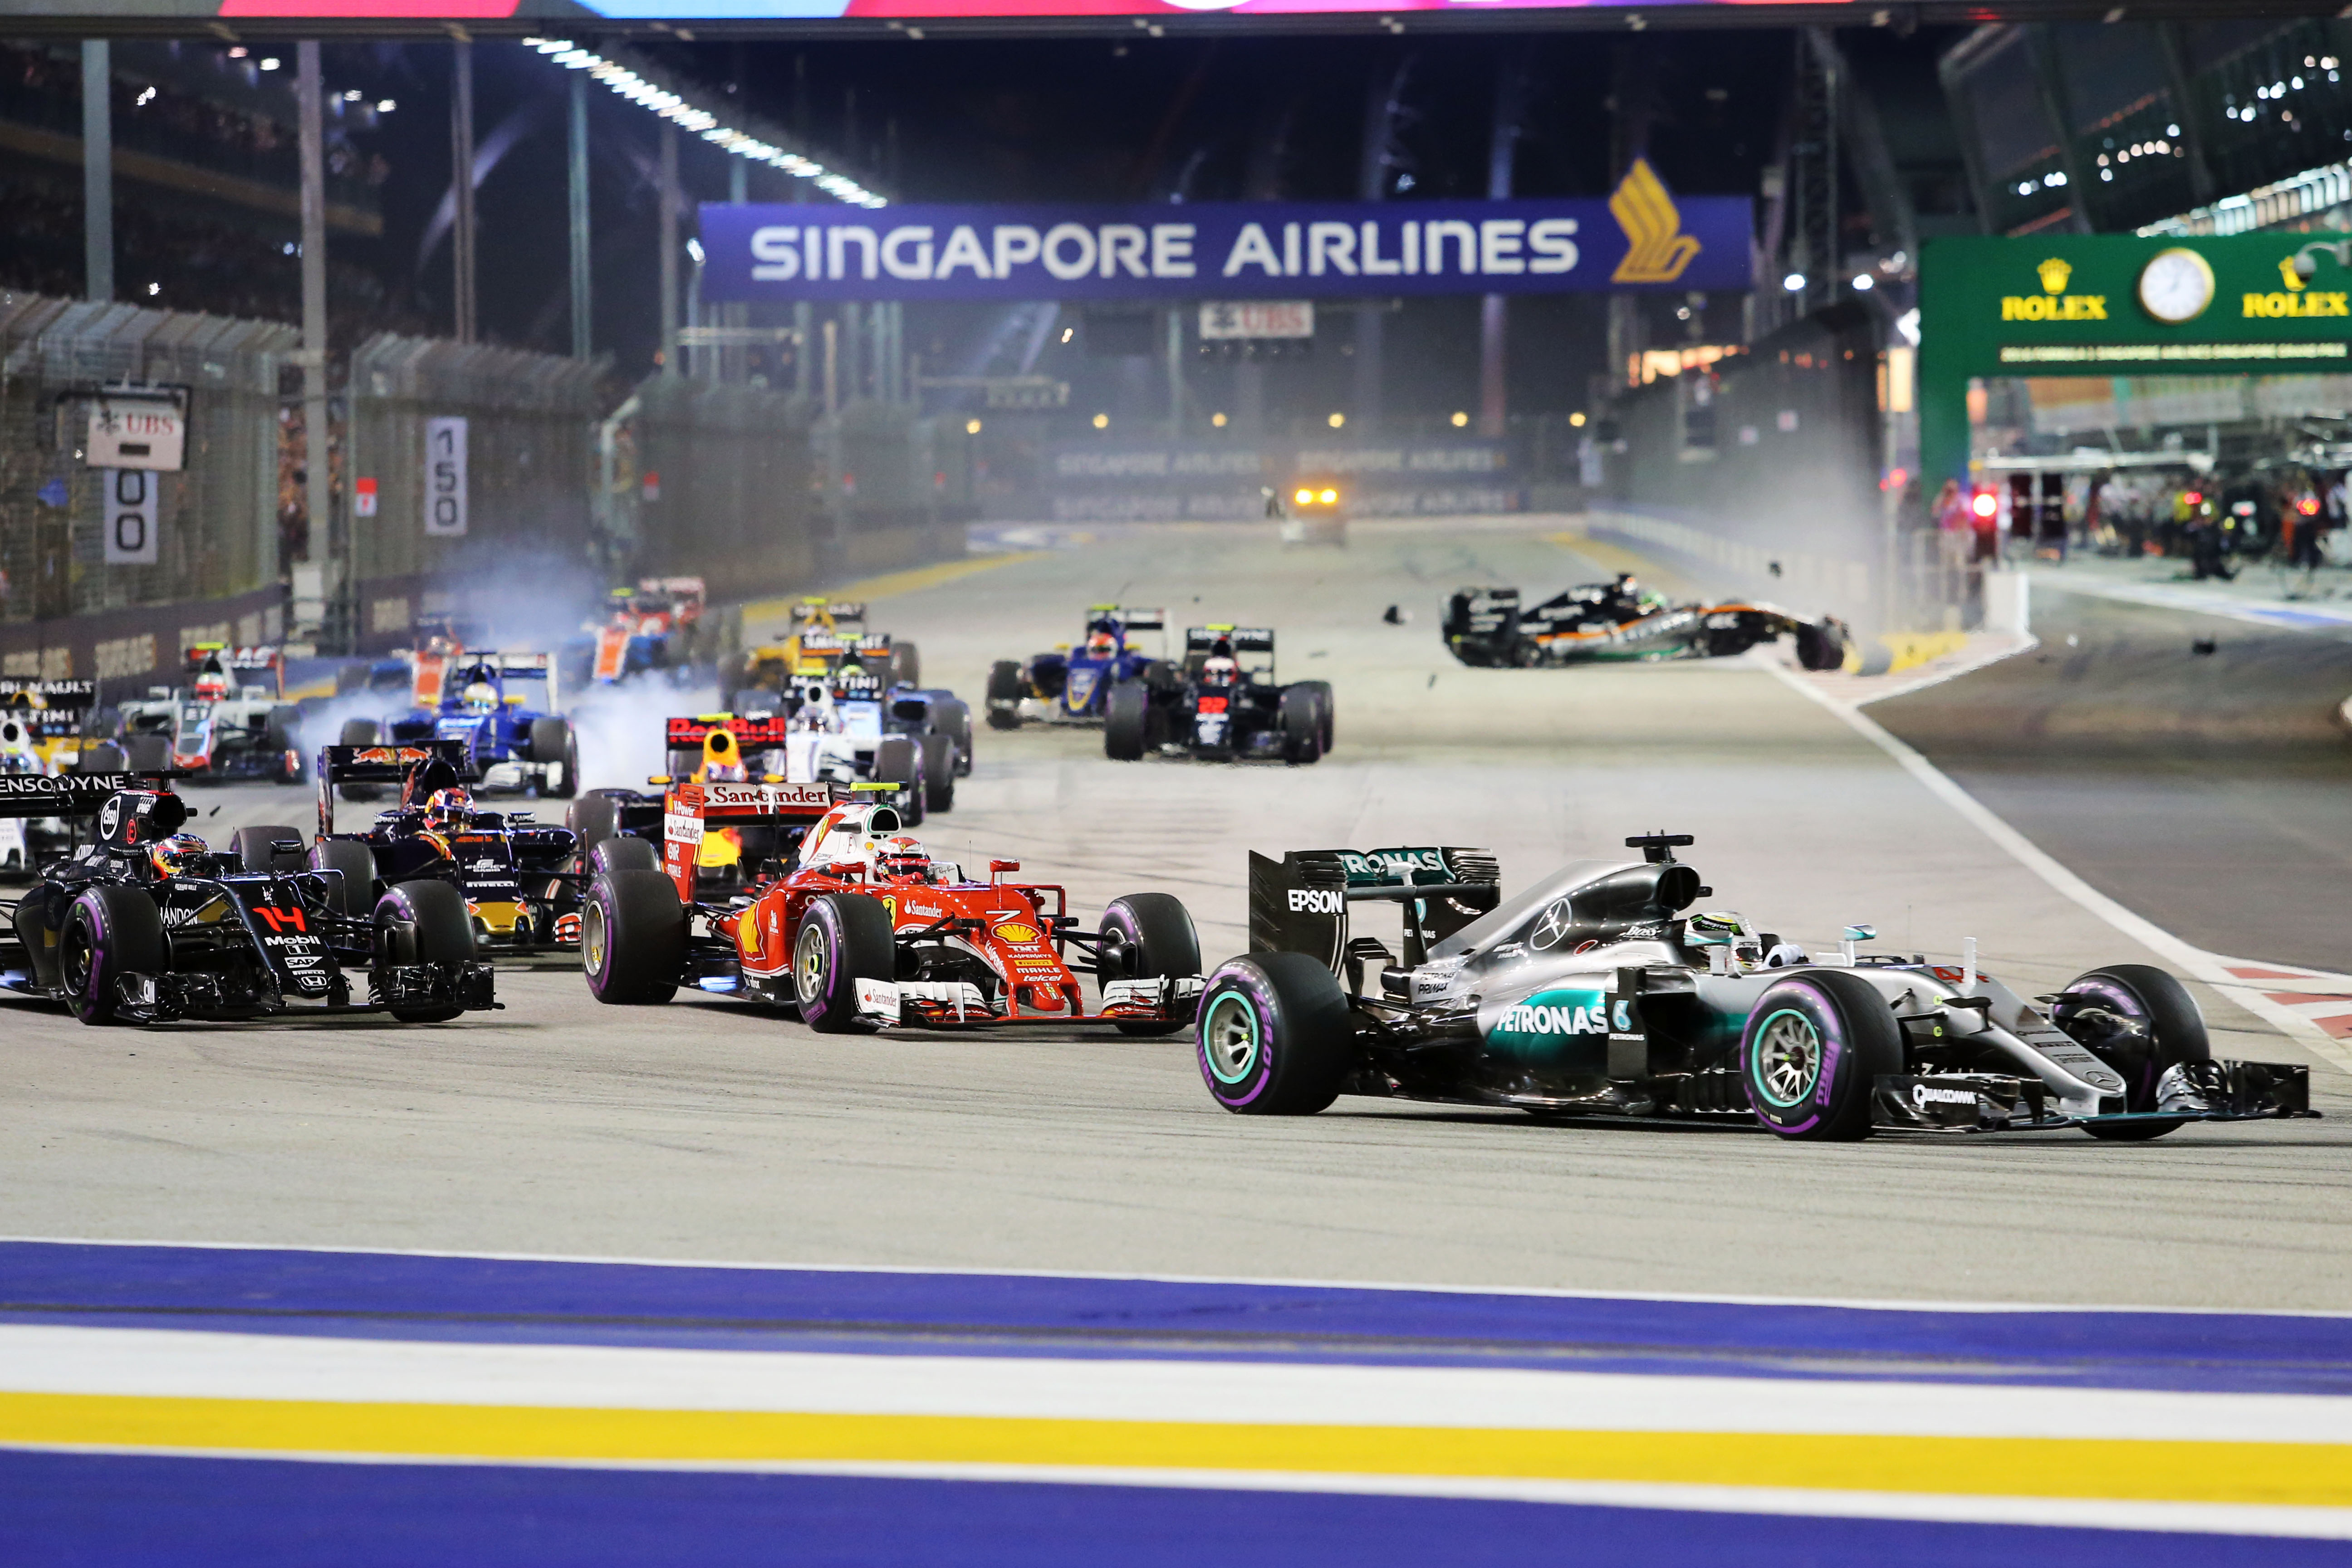 f1 formula in singapore Time to shred posted on 5 september 2018 the formula 1 singapore grand prix is a fan's paradise, but an intense physical challenge for the drivers.